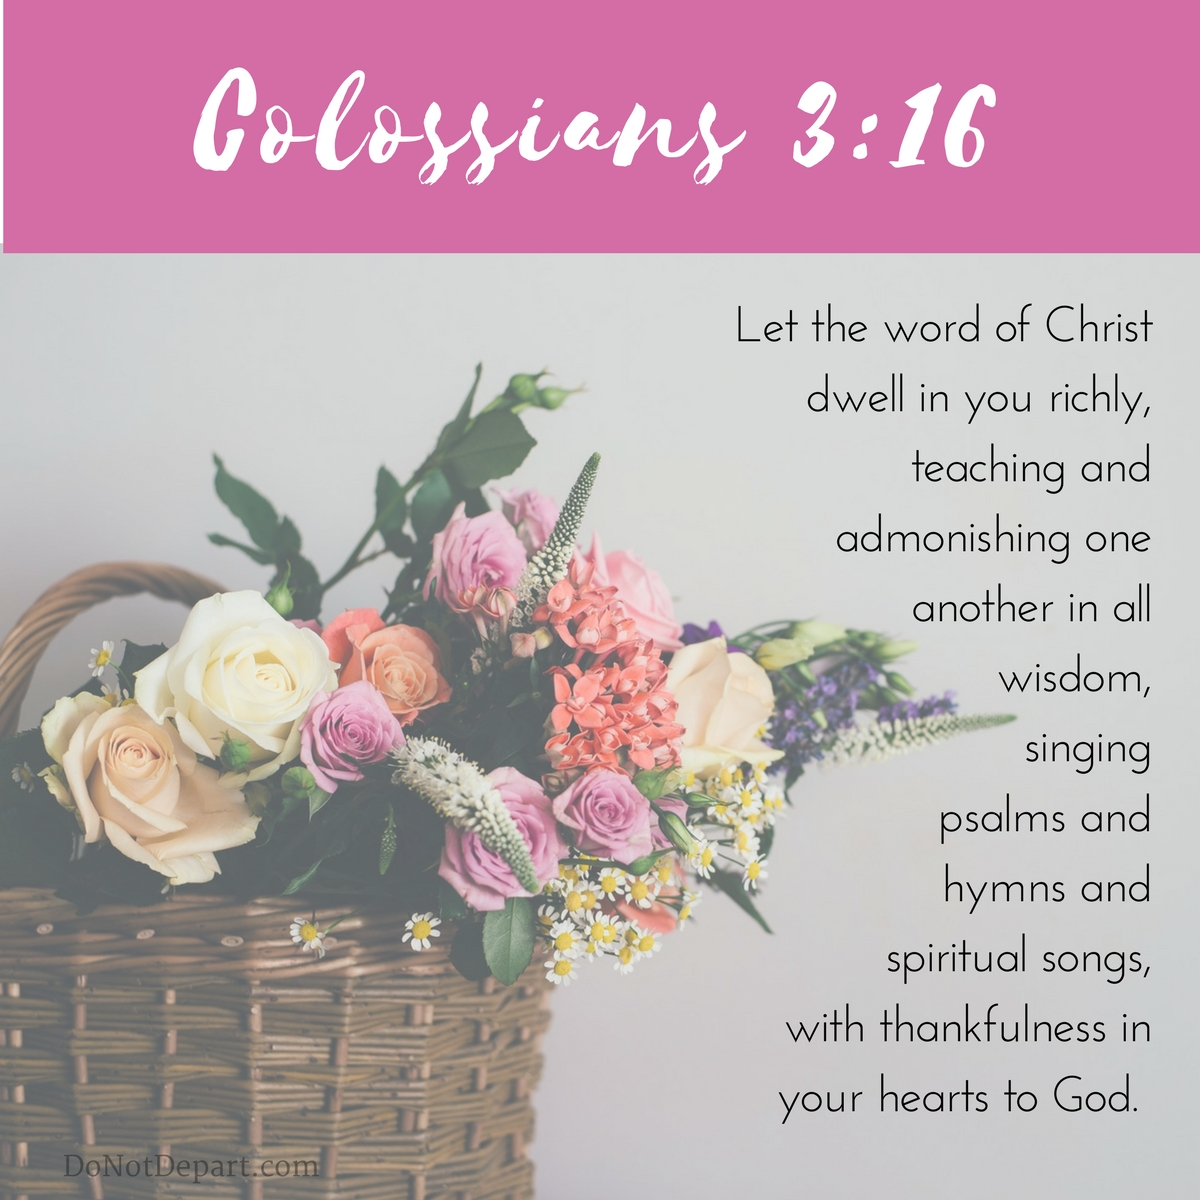 Colossians-3-16